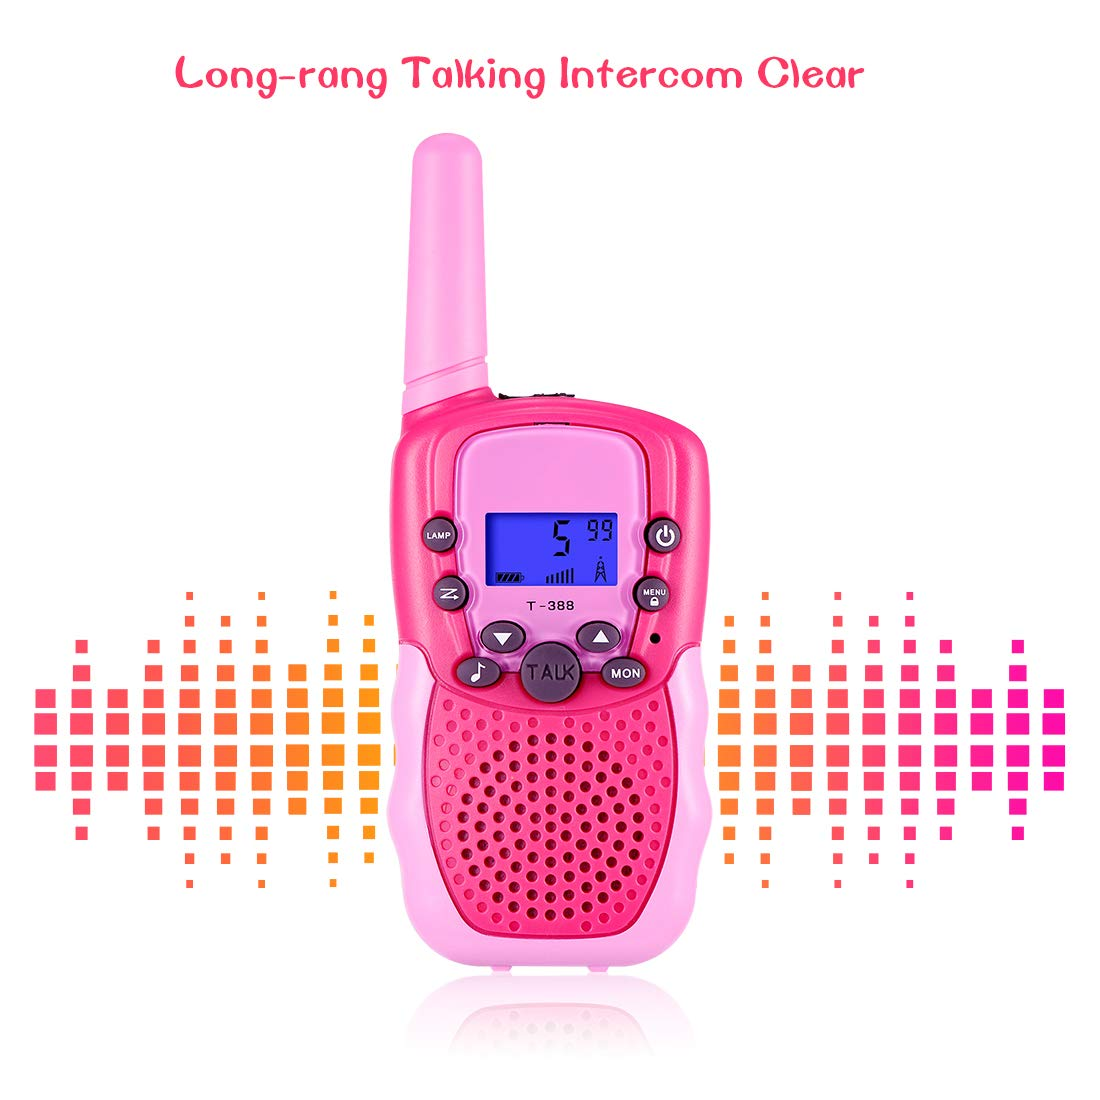 SnowCinda Toys for 3-12 Year Old Girls,Walkie Talkies for Kids with 22 Channels 2 Way Radio 3 Miles Long Range Toy for Outside Adventures, Best Gifts for 4-8 Year Old Boys and Girls by SnowCinda (Image #4)